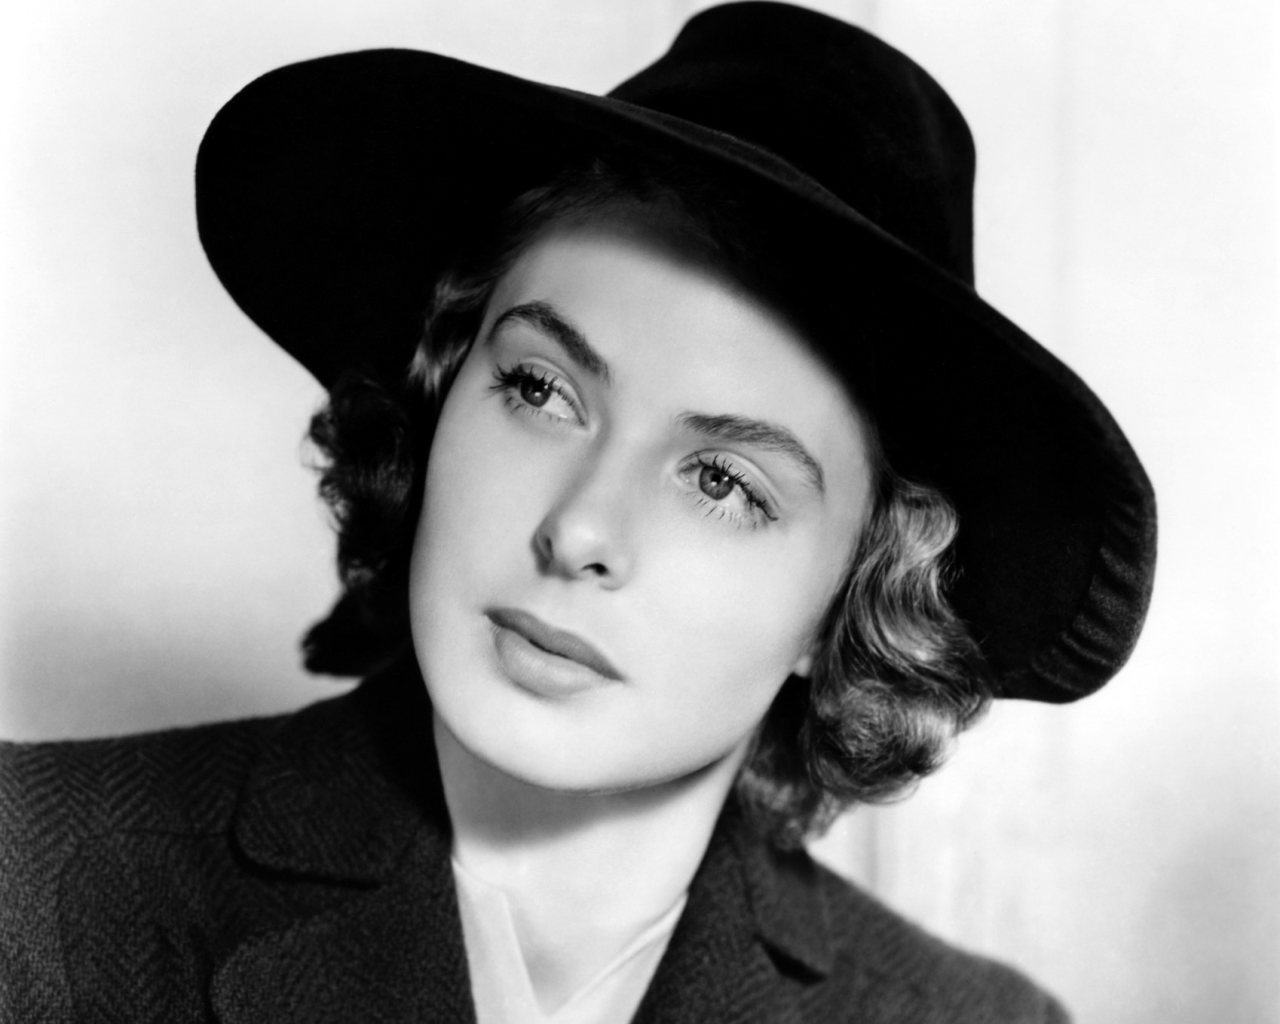 Ingrid Bergman 1280x1024 Wallpapers 1280x1024 Wallpapers 1280x1024